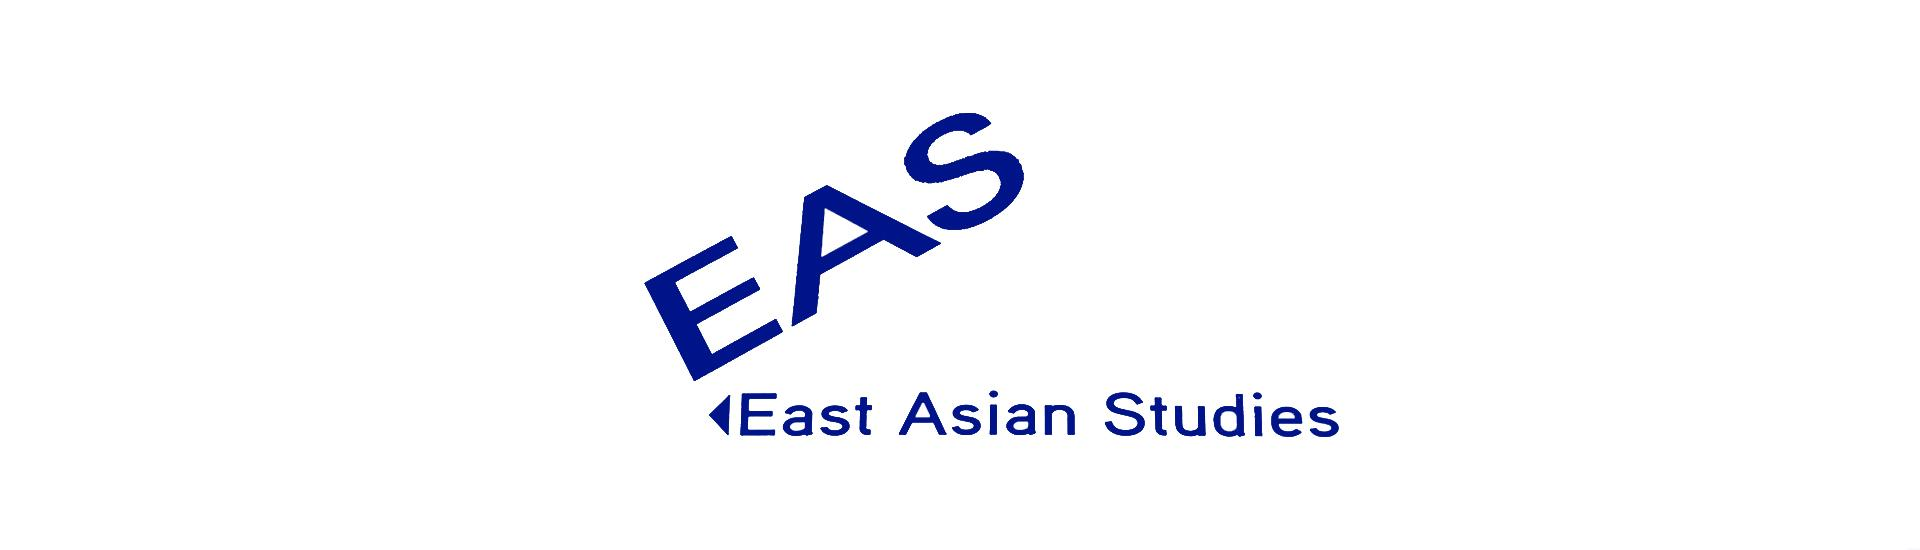 """EAS - Department of East Asian Studies"" in blue text against a white background."